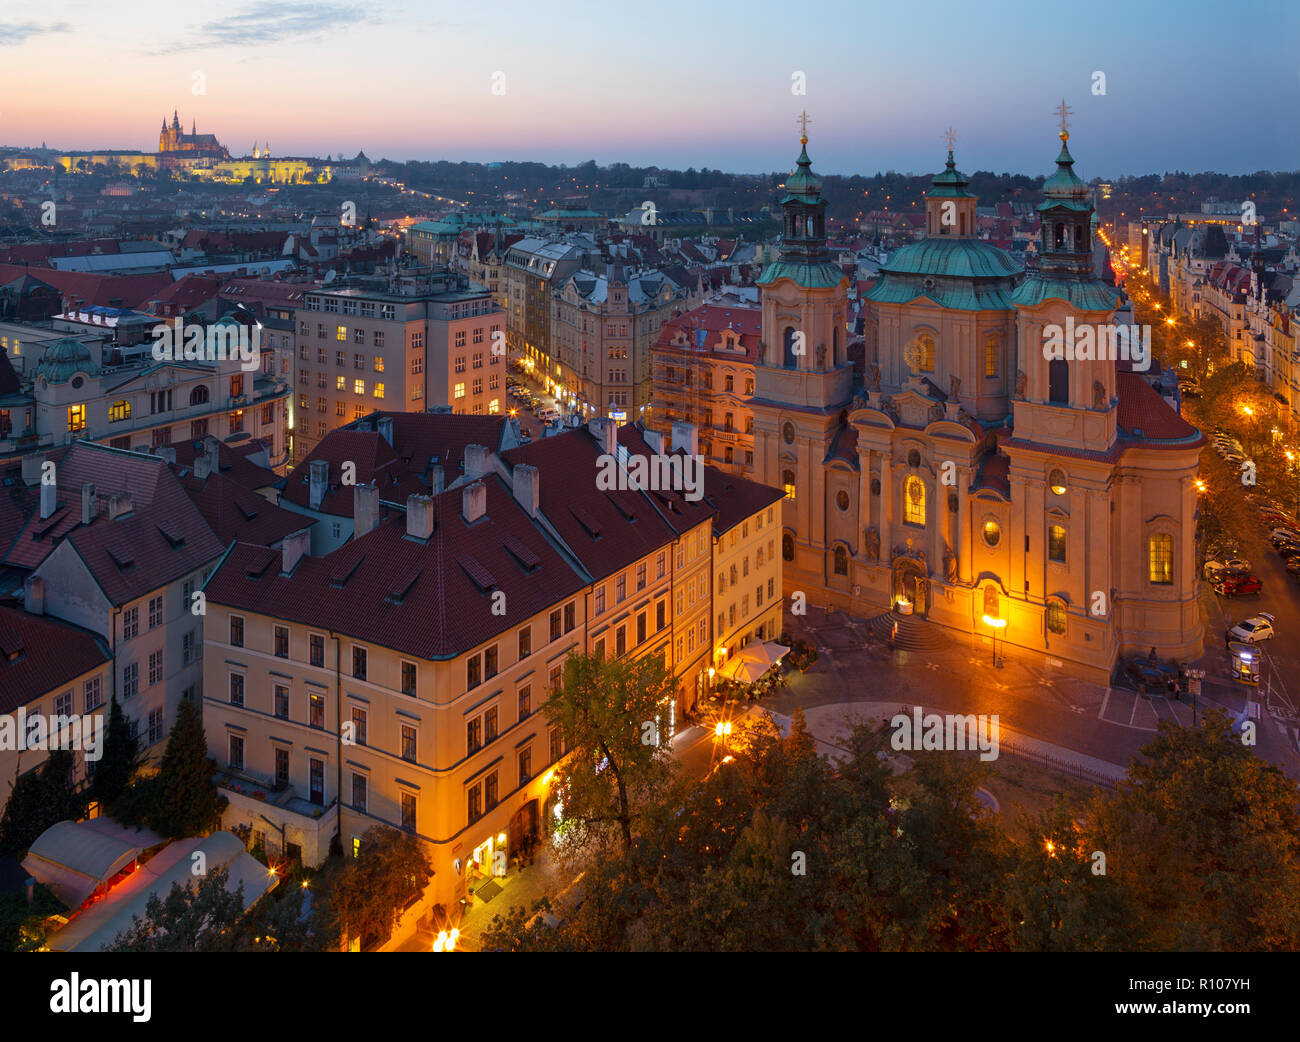 Prague - The St. Nicholas church,   Staromestske square and Old Town at dusk. Stock Photo